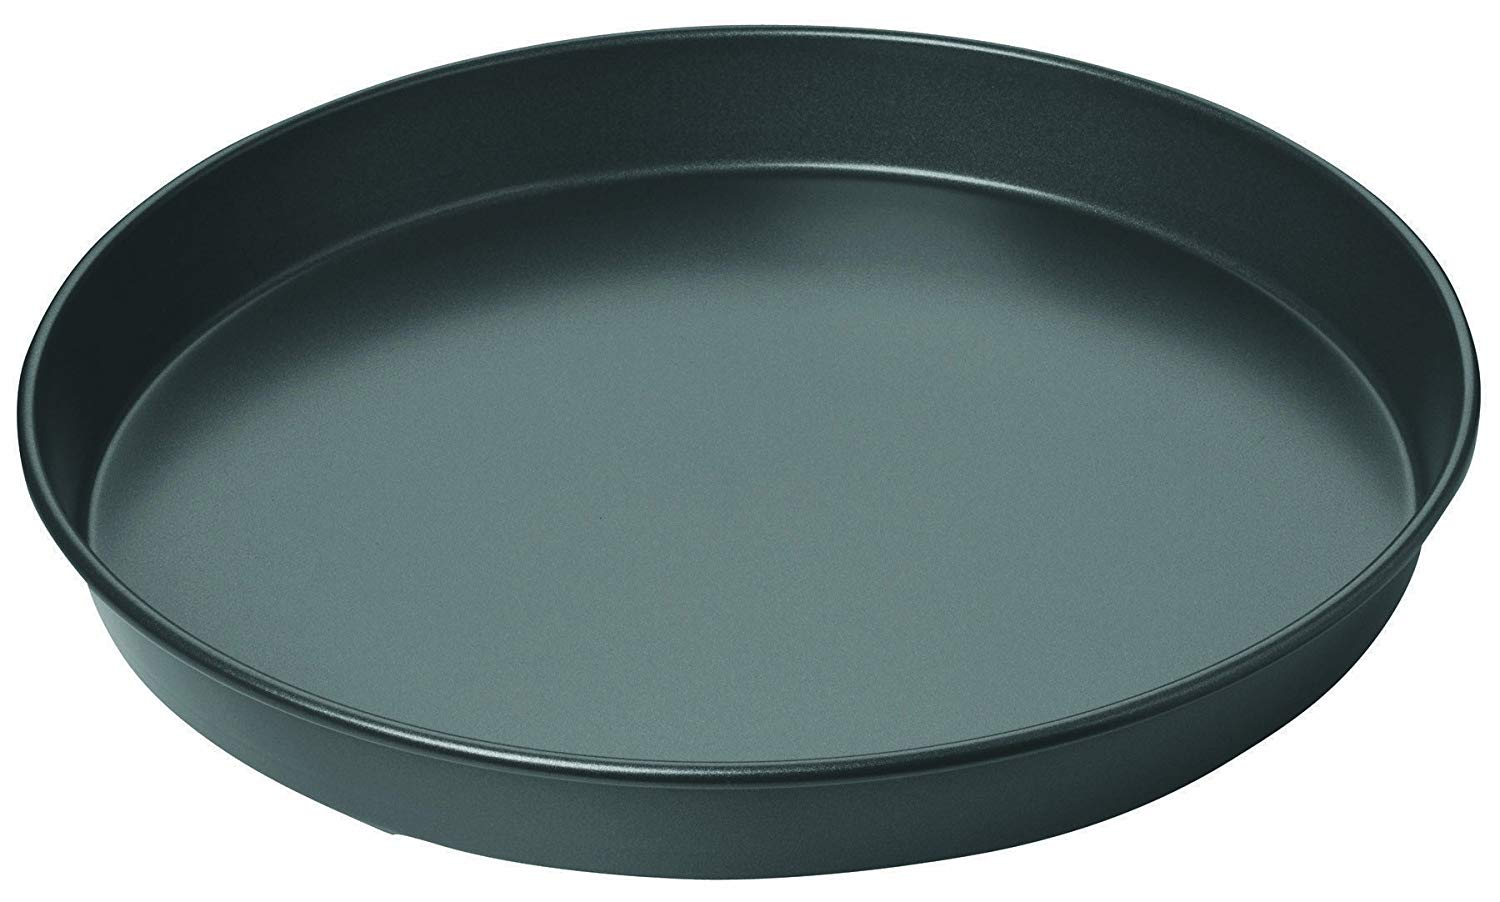 Chicago metallic professional non-stick deep dish pizza pan